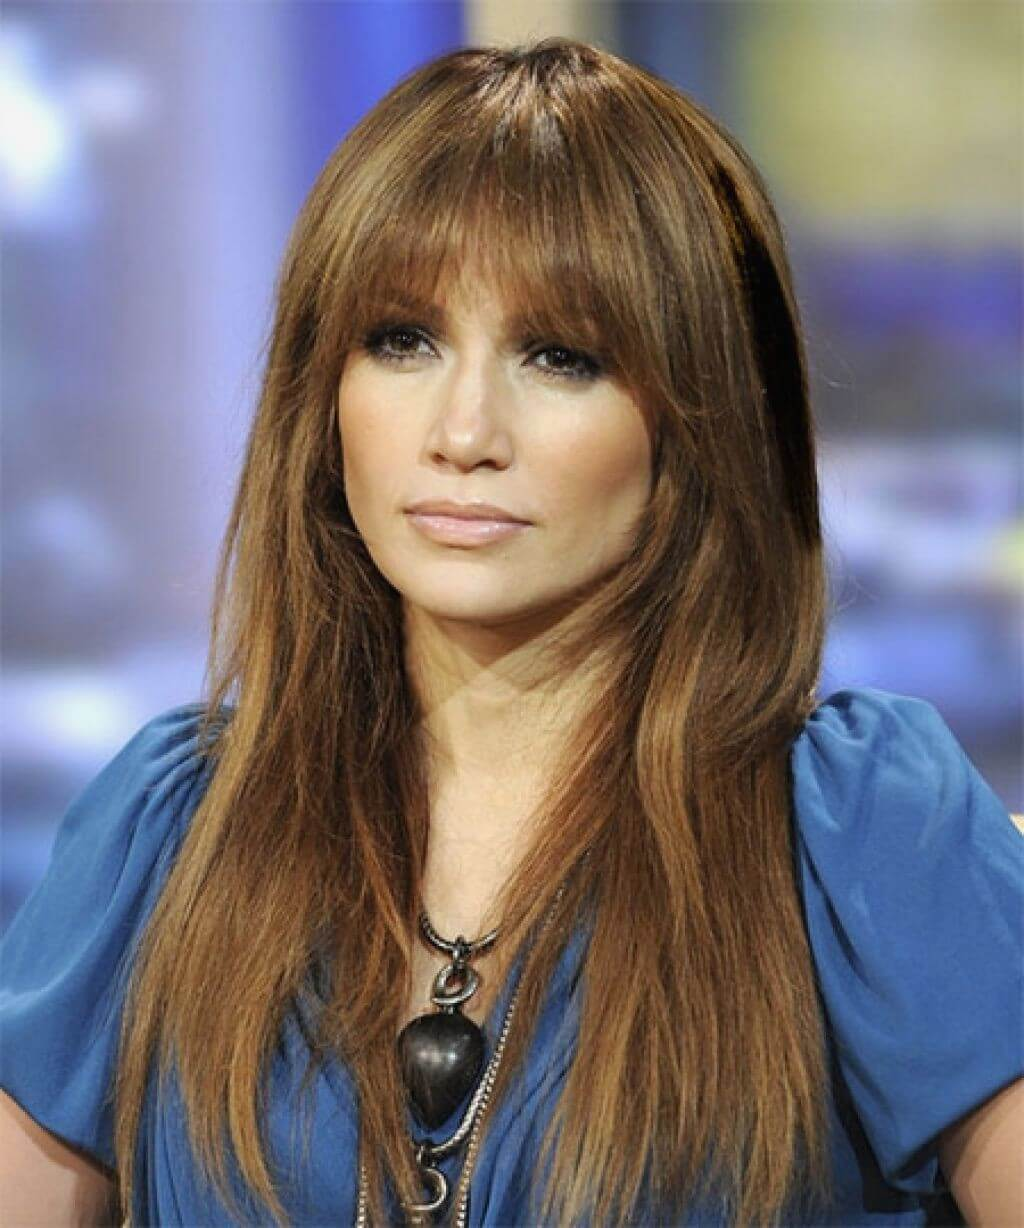 Blunt bangs with straight long hair for medium ash brunette colored hair with dark blonde highlights